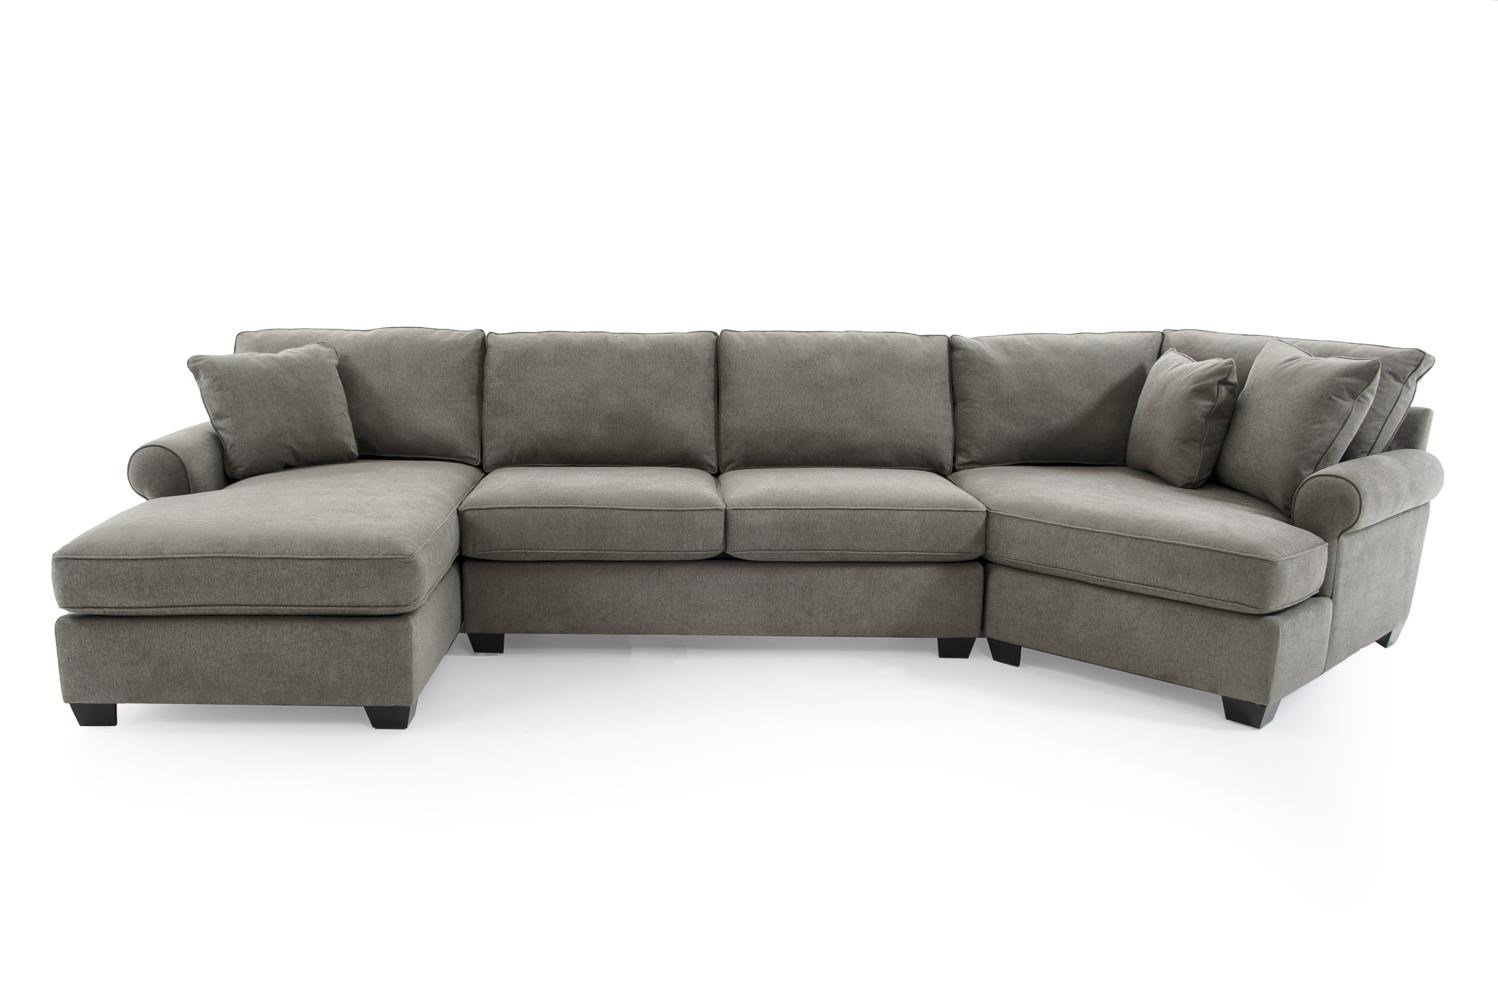 Jessica 3 Pc Sectional Sofa by Max Home at Baer's Furniture